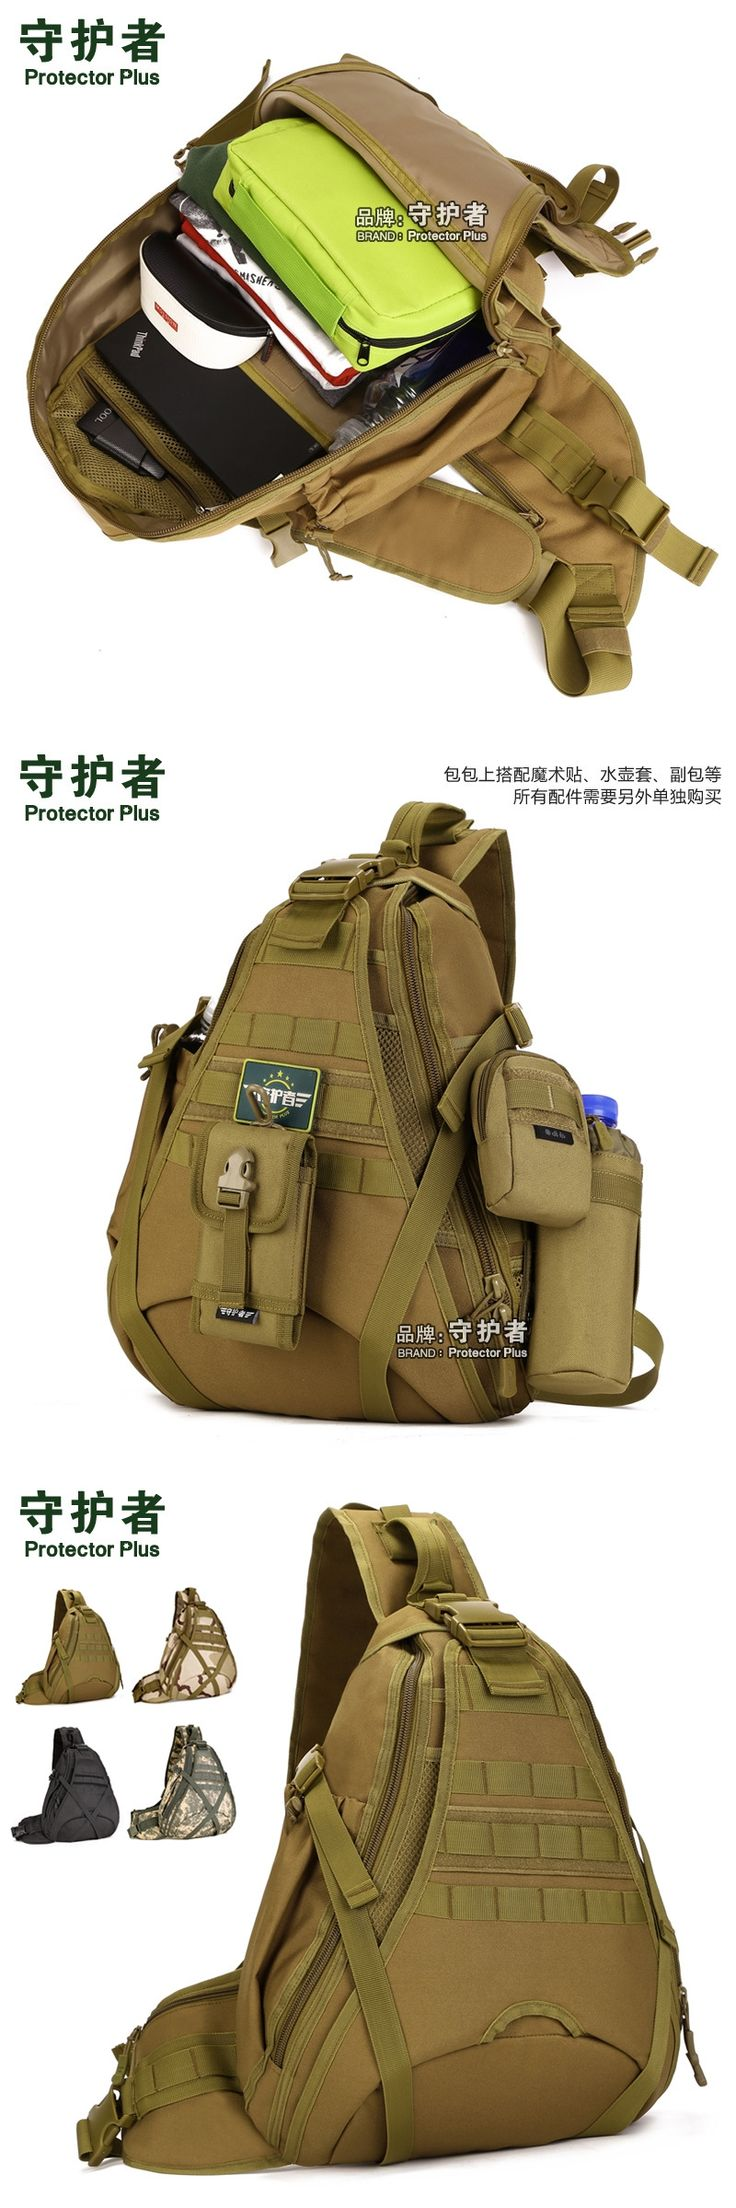 50CM Very Large capacity  Single Strap backpack shoulder bag  tactical  14-inch laptop chest pack riding mountaineering A3174~x